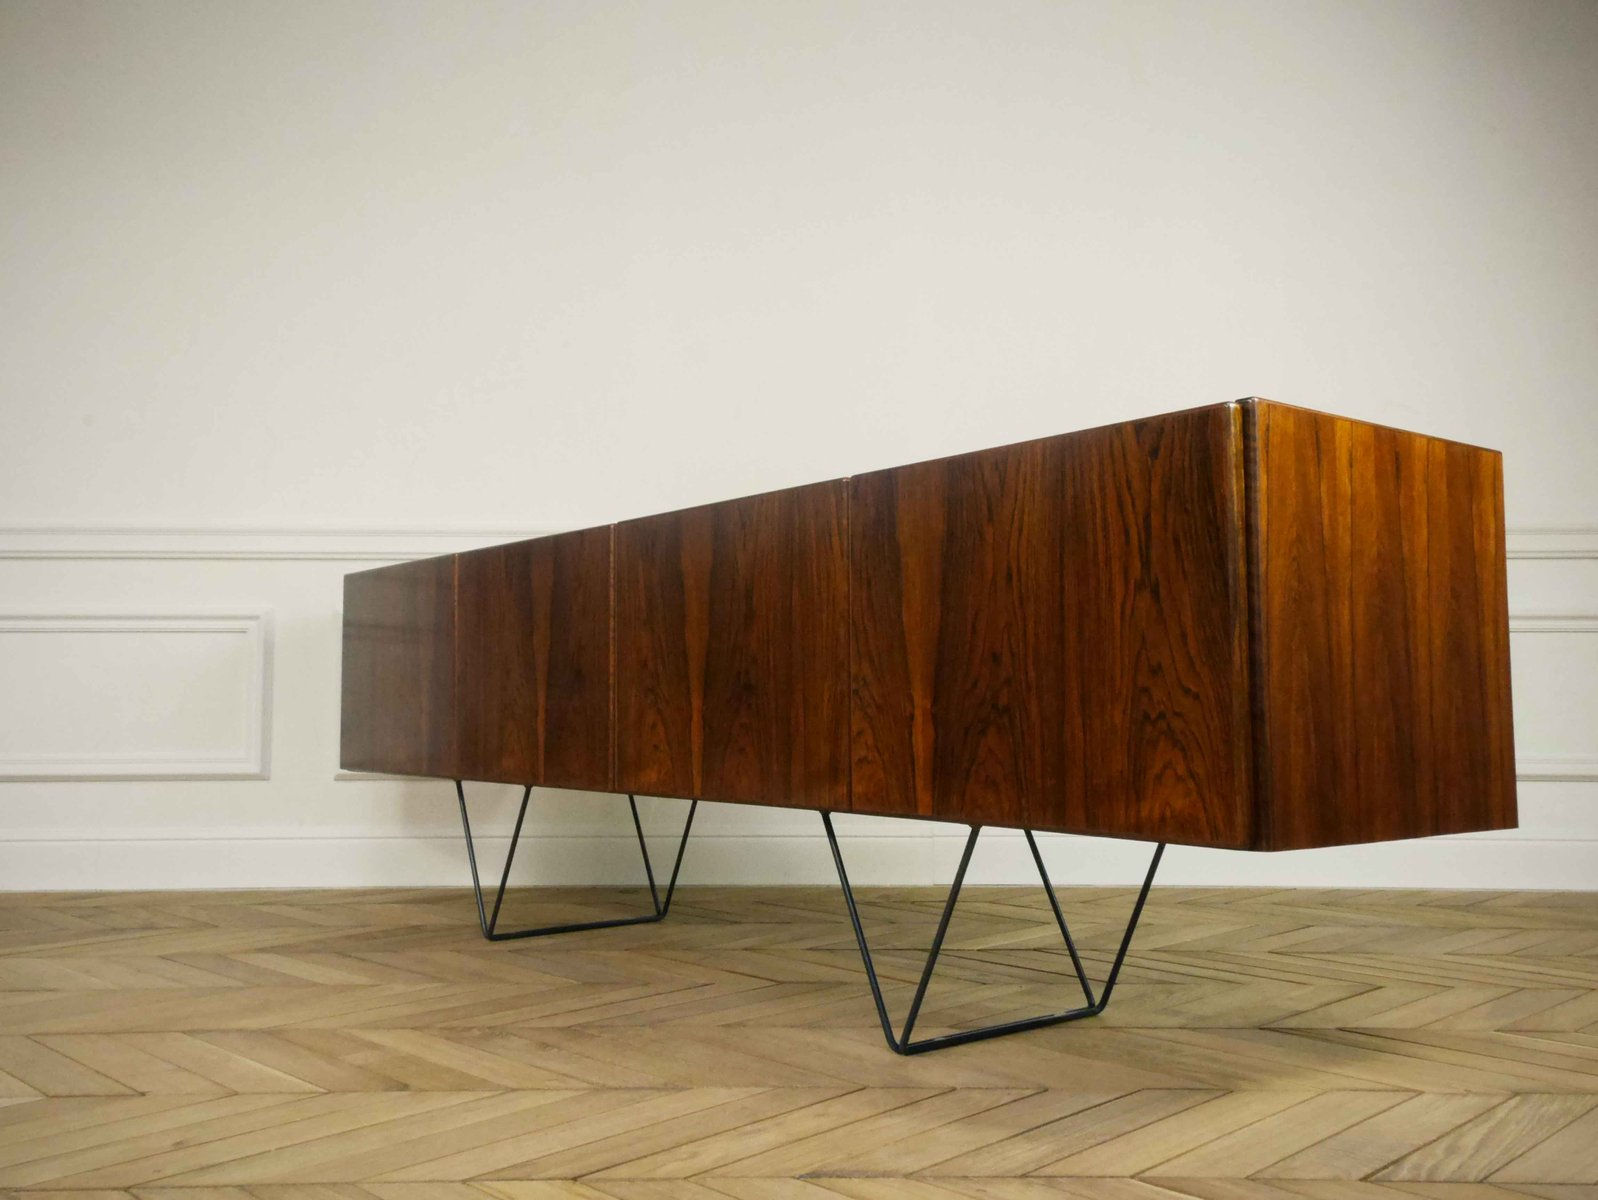 Minimalist rosewood sideboard 1960s for sale at pamono for Minimalist art 1960